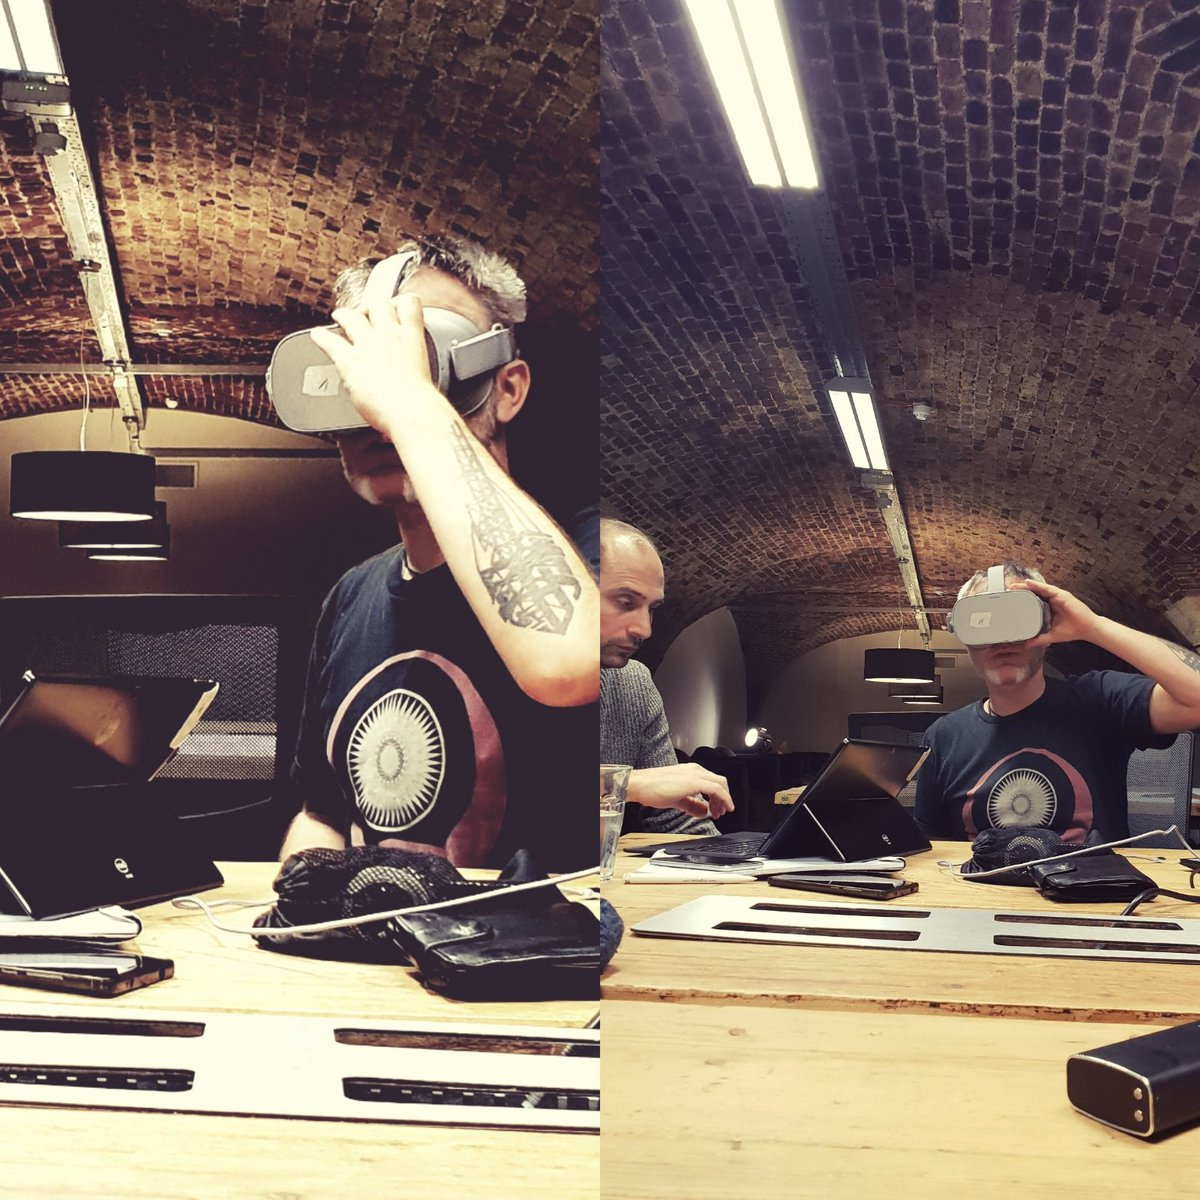 Shhh... Late night VR dev session in progress. Watch this space... #vr #experientialmarketing #technology #oculusgo #AR